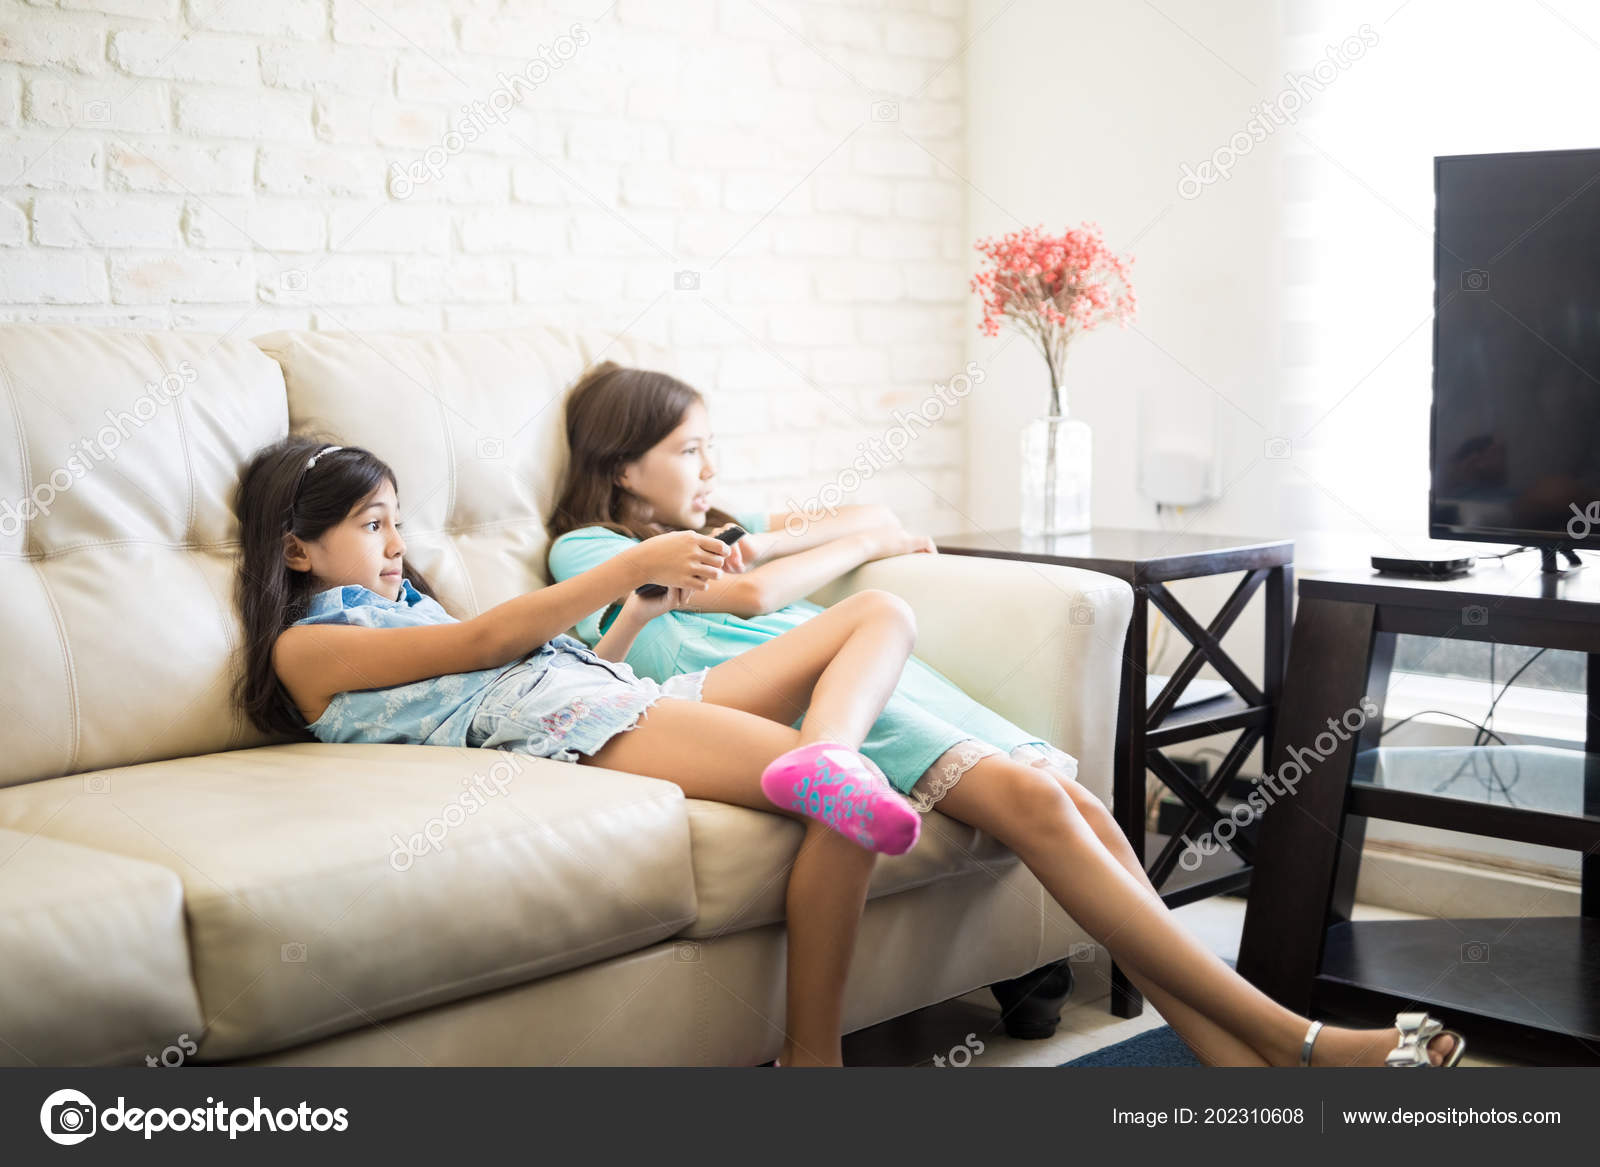 Remarkable Small Girl Selecting Channel Remote While Sitting Couch Home Alphanode Cool Chair Designs And Ideas Alphanodeonline